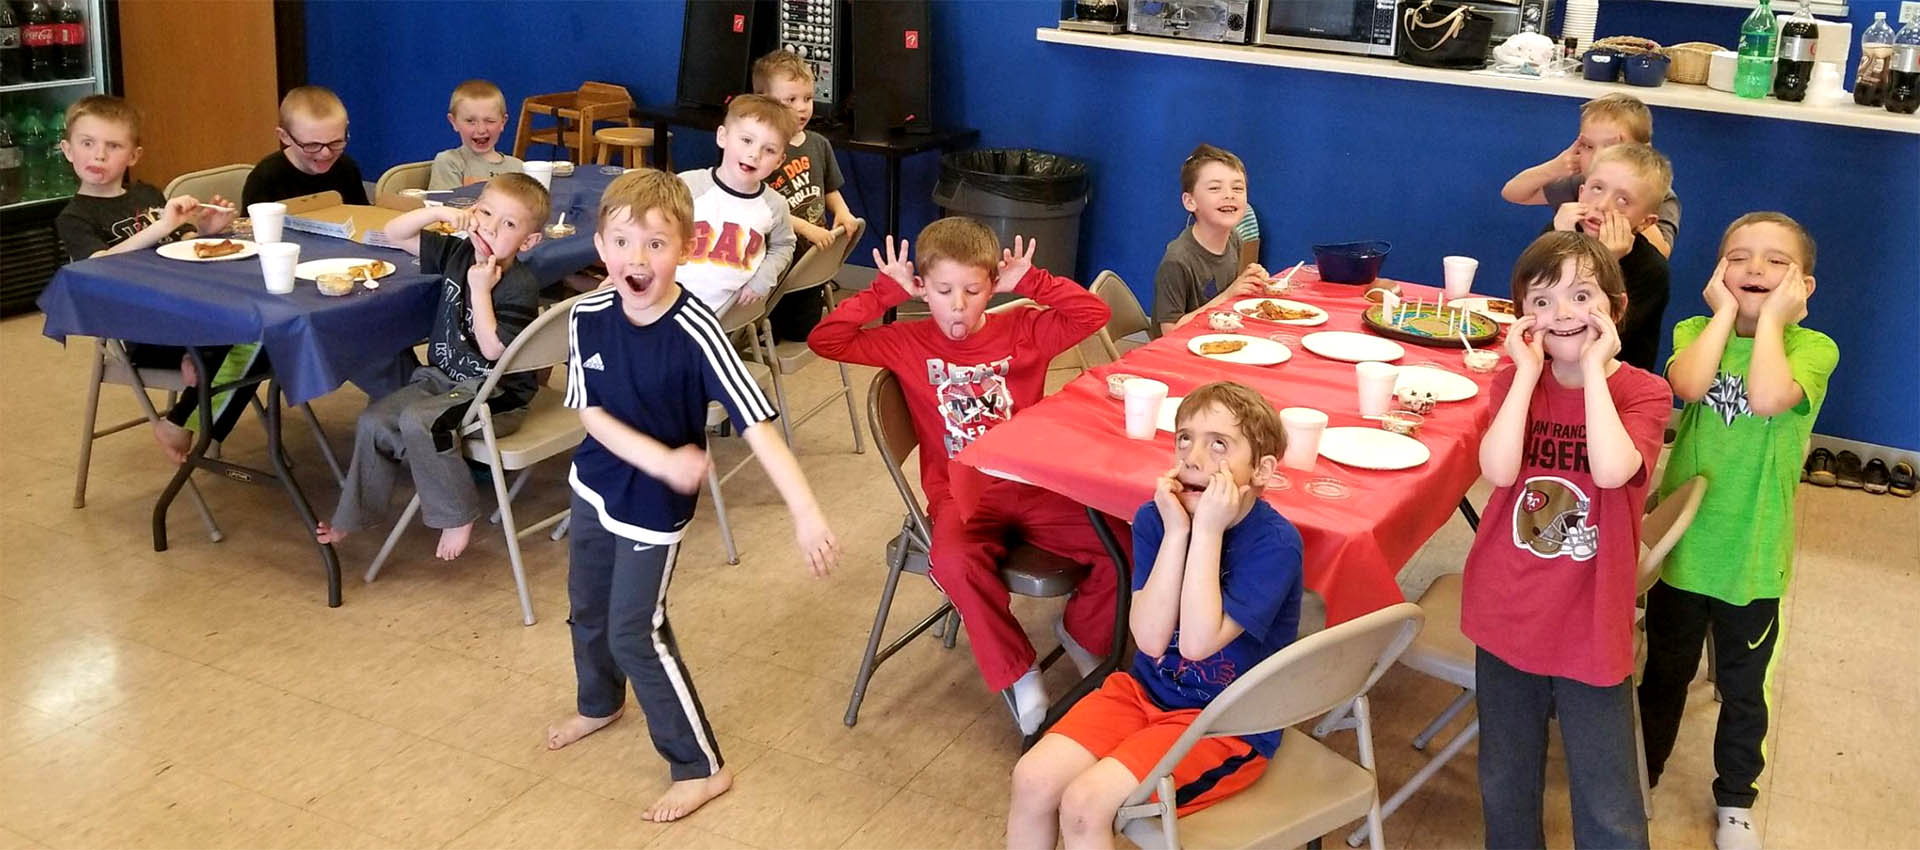 Party Zone Indoor Party Center Slider Kids Playing